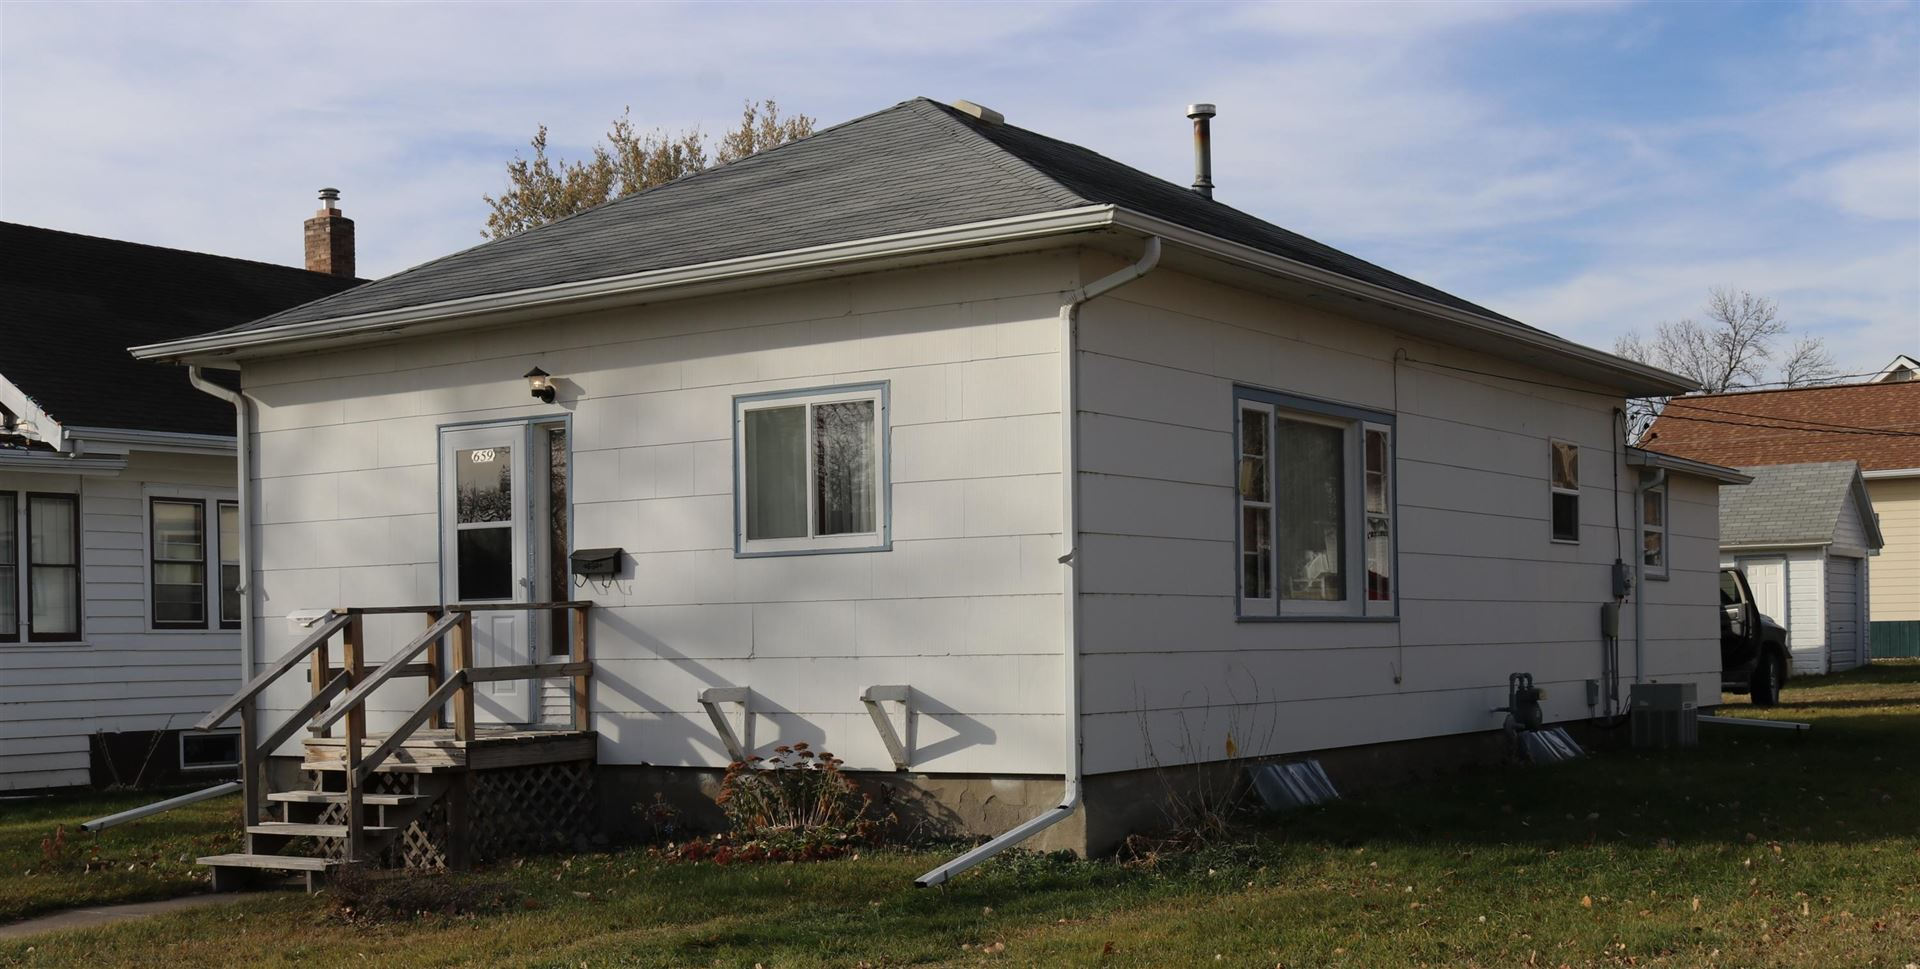 Photo for 659 3rd Avenue NW, Valley City, ND 58072 (MLS # 20-631)